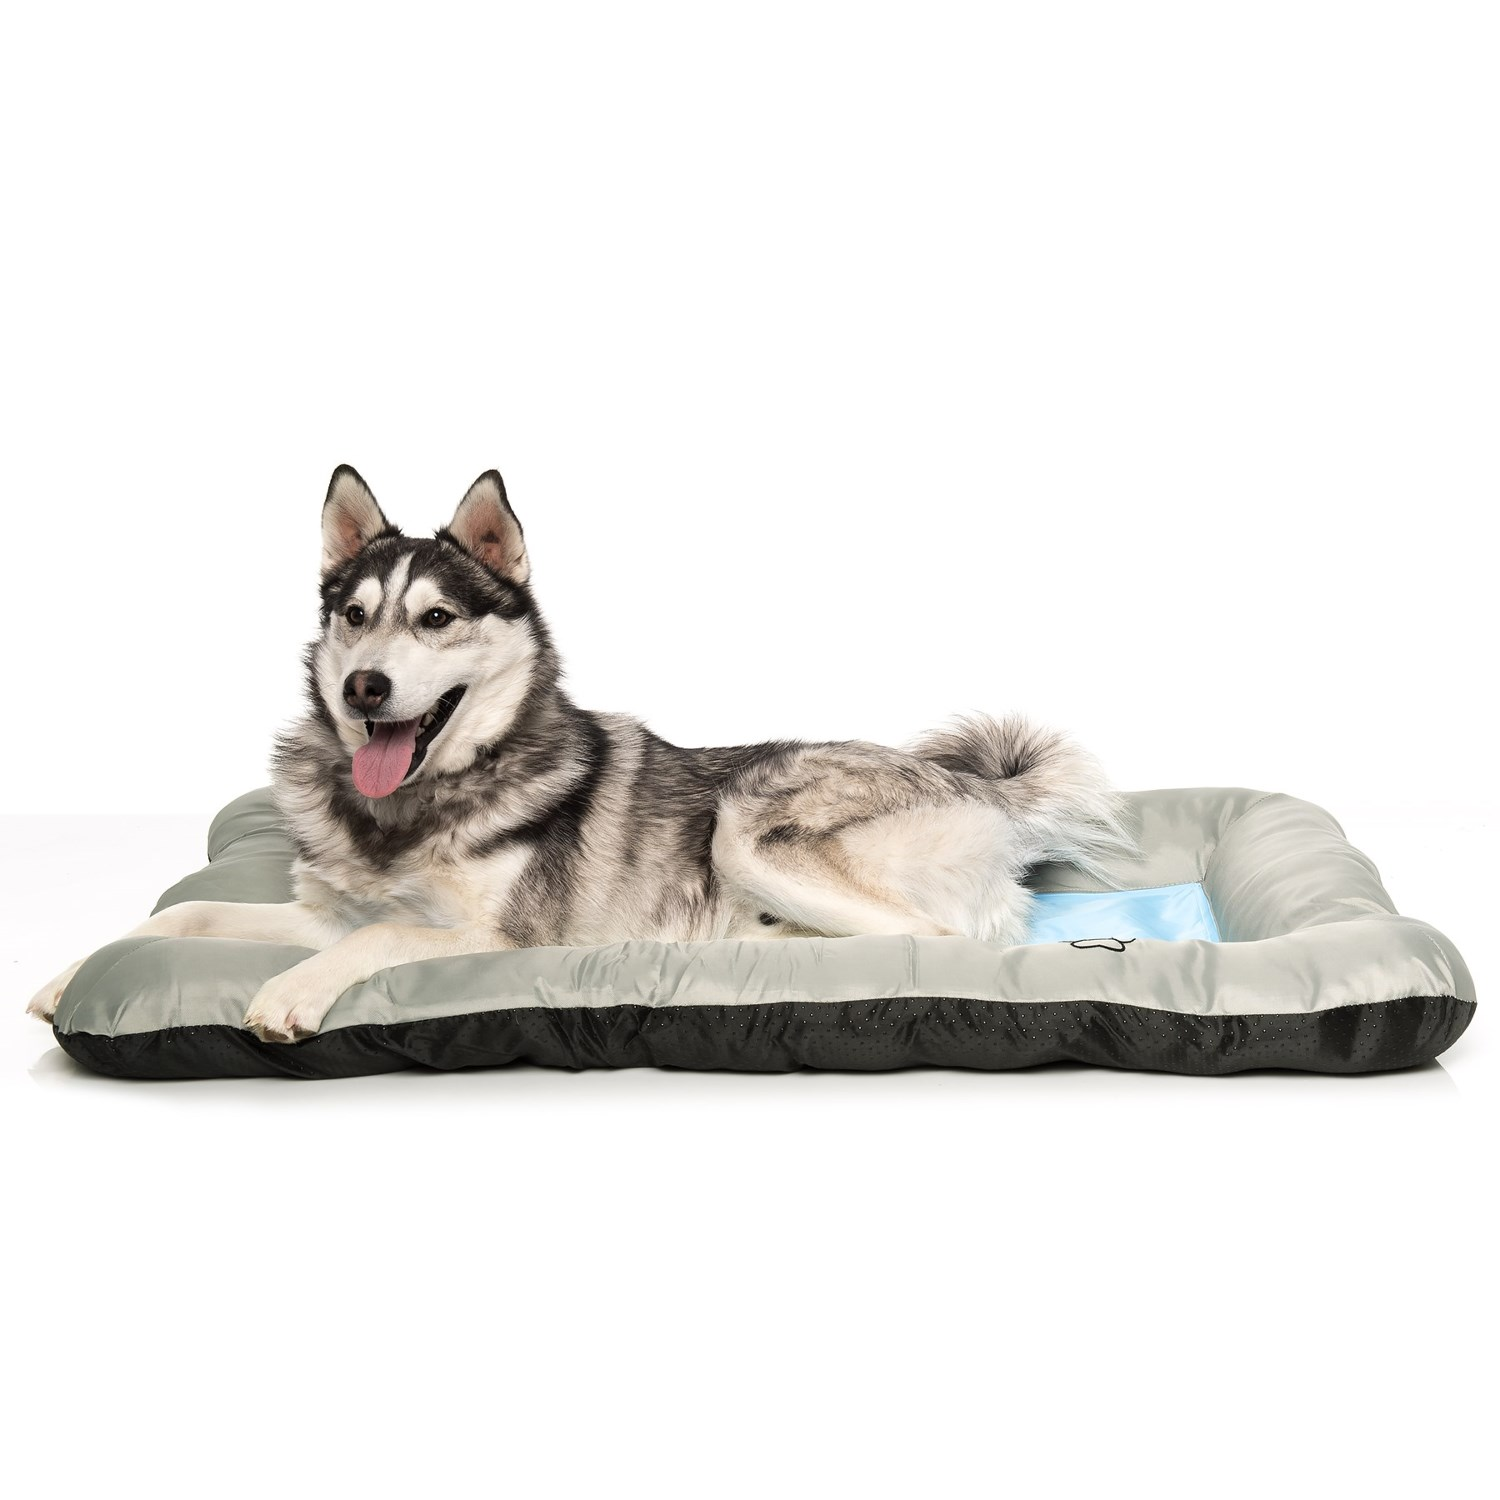 cool amazon dogs for pets home mat keeping cushion from self amazonshop mats sleeping pad dog cooling pet product